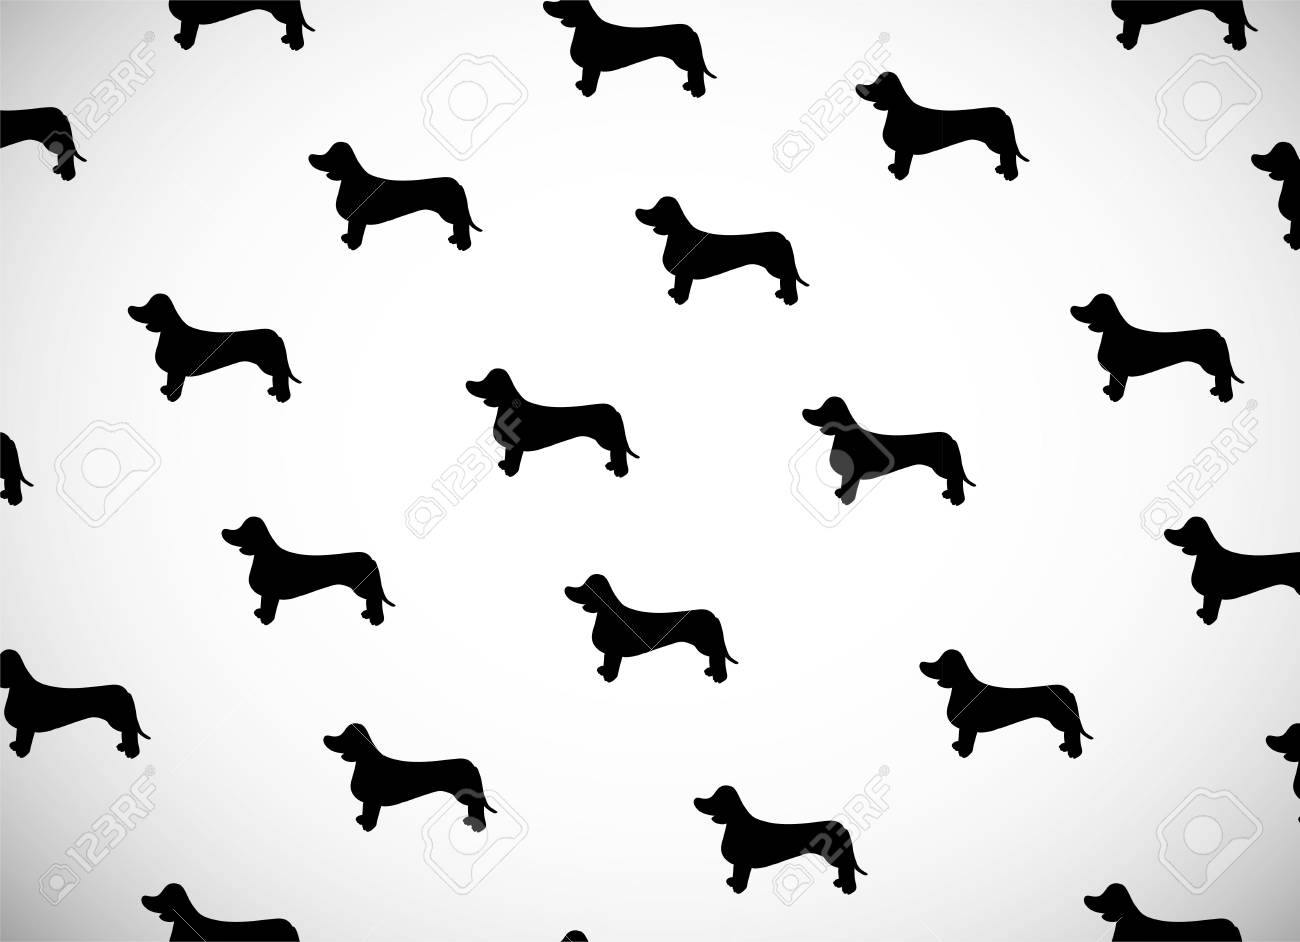 Greeting Card With Black Silhouettes Of Dog Breed Dachshund Can Be Used For Wallpaper